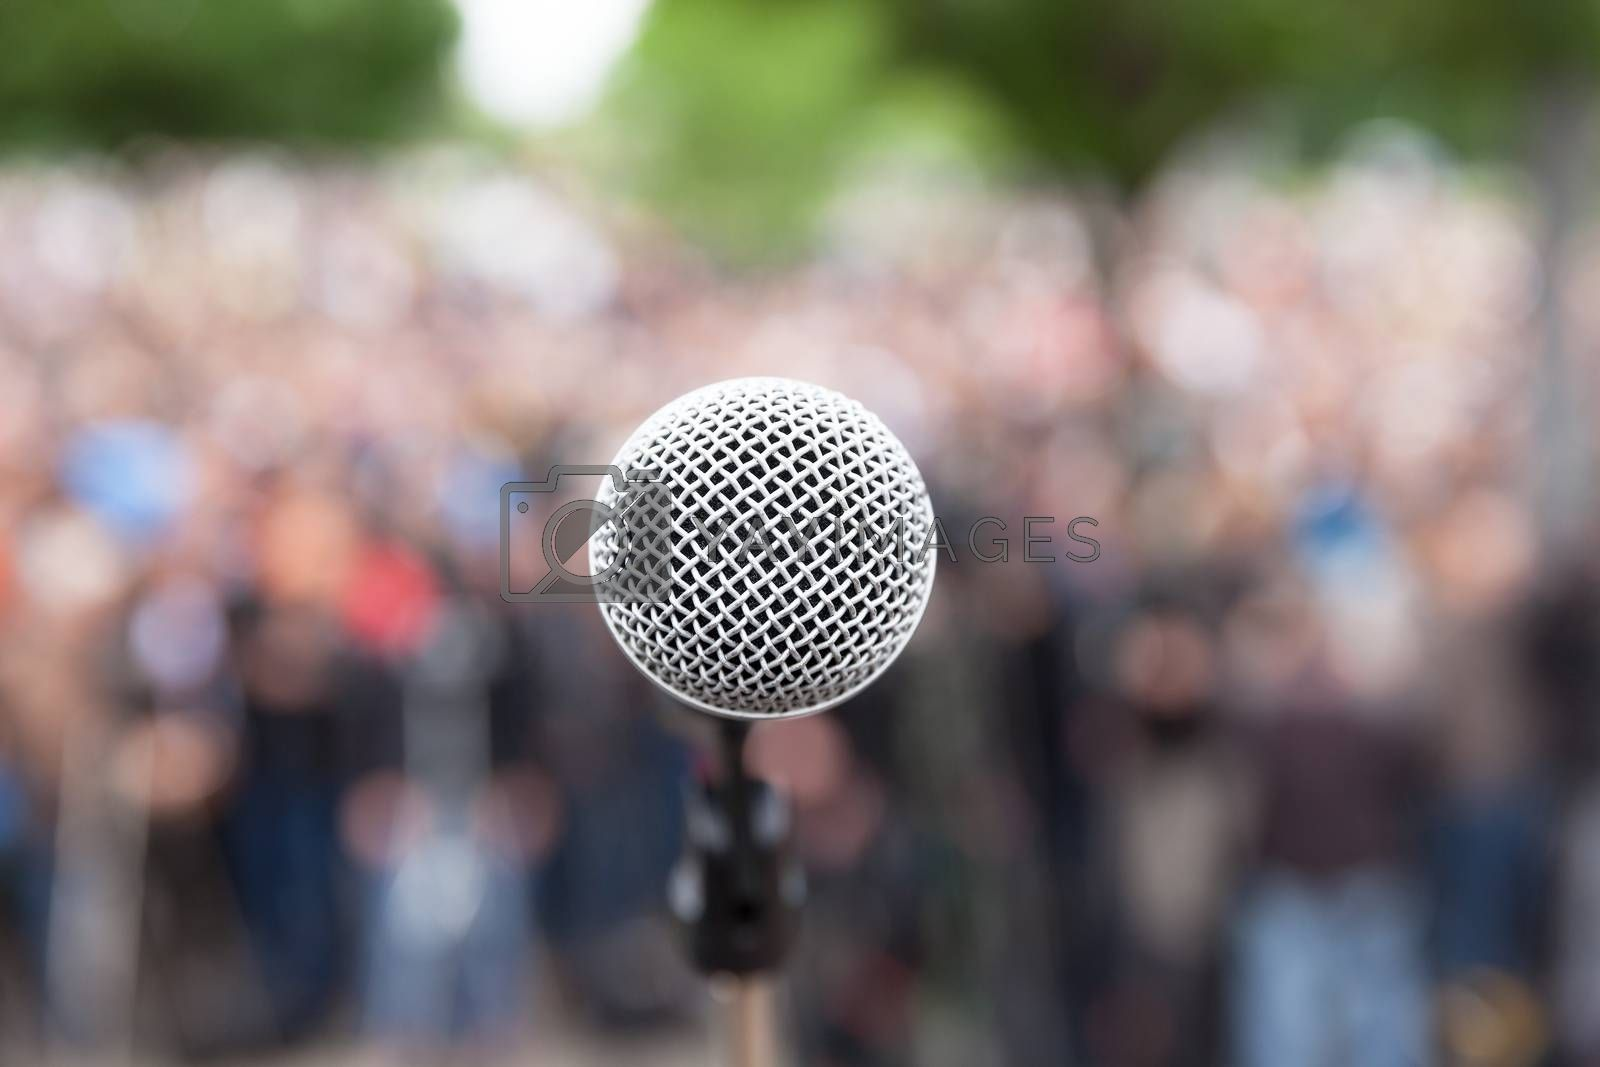 Political protest. Public demonstration. Microphone.